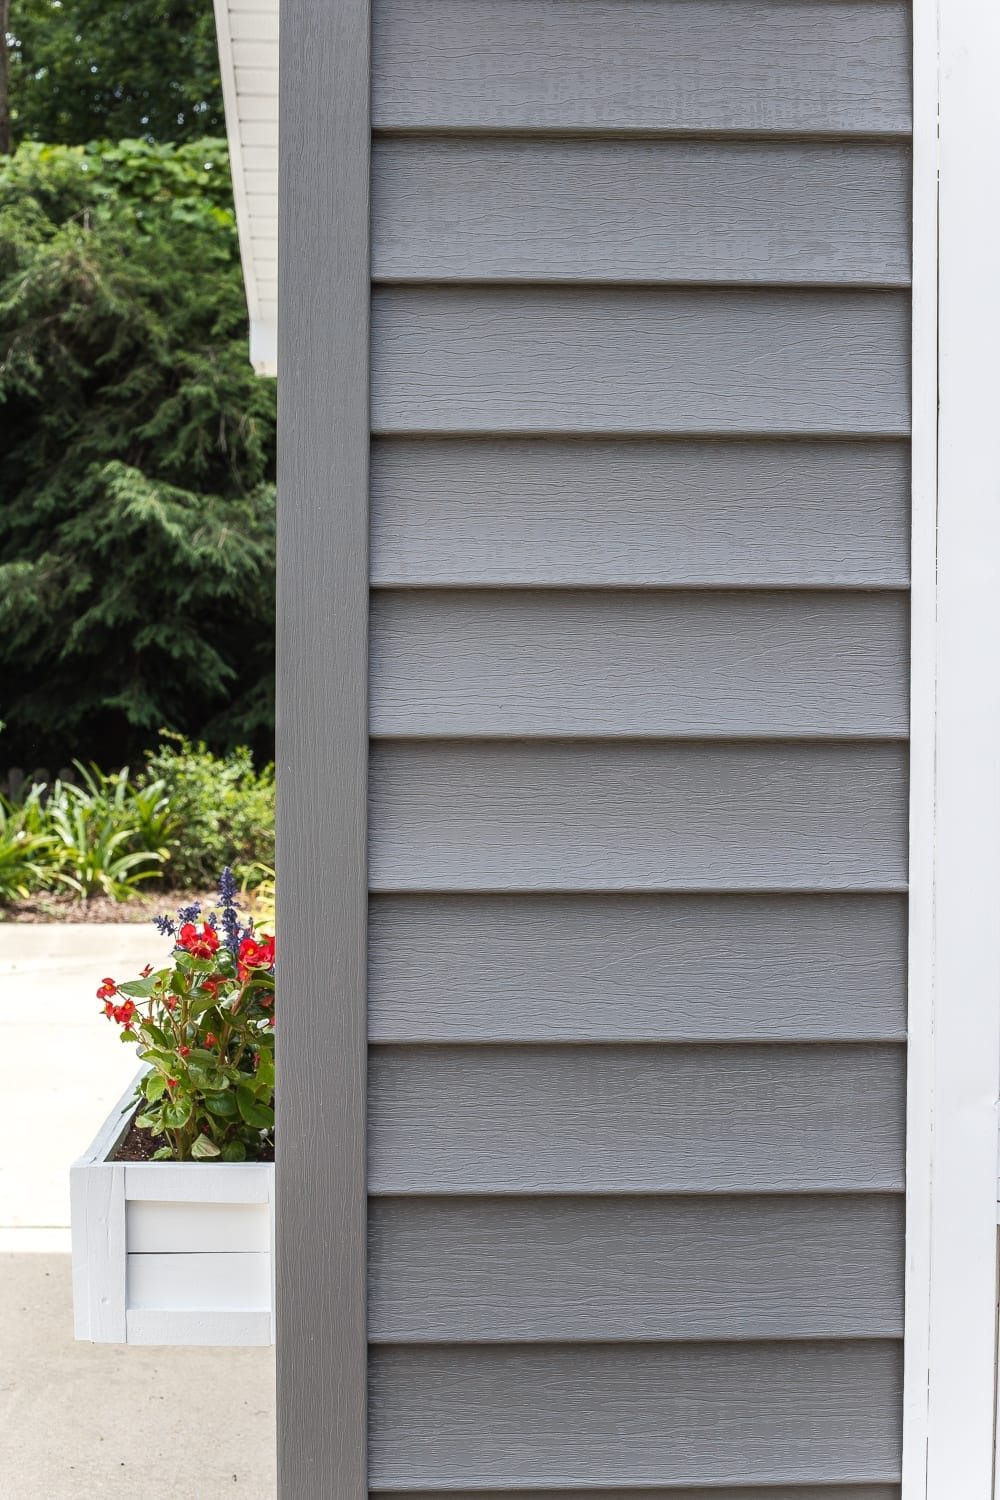 How to paint vinyl siding - Sherwin Williams Pepper Shake dark charcoal gray